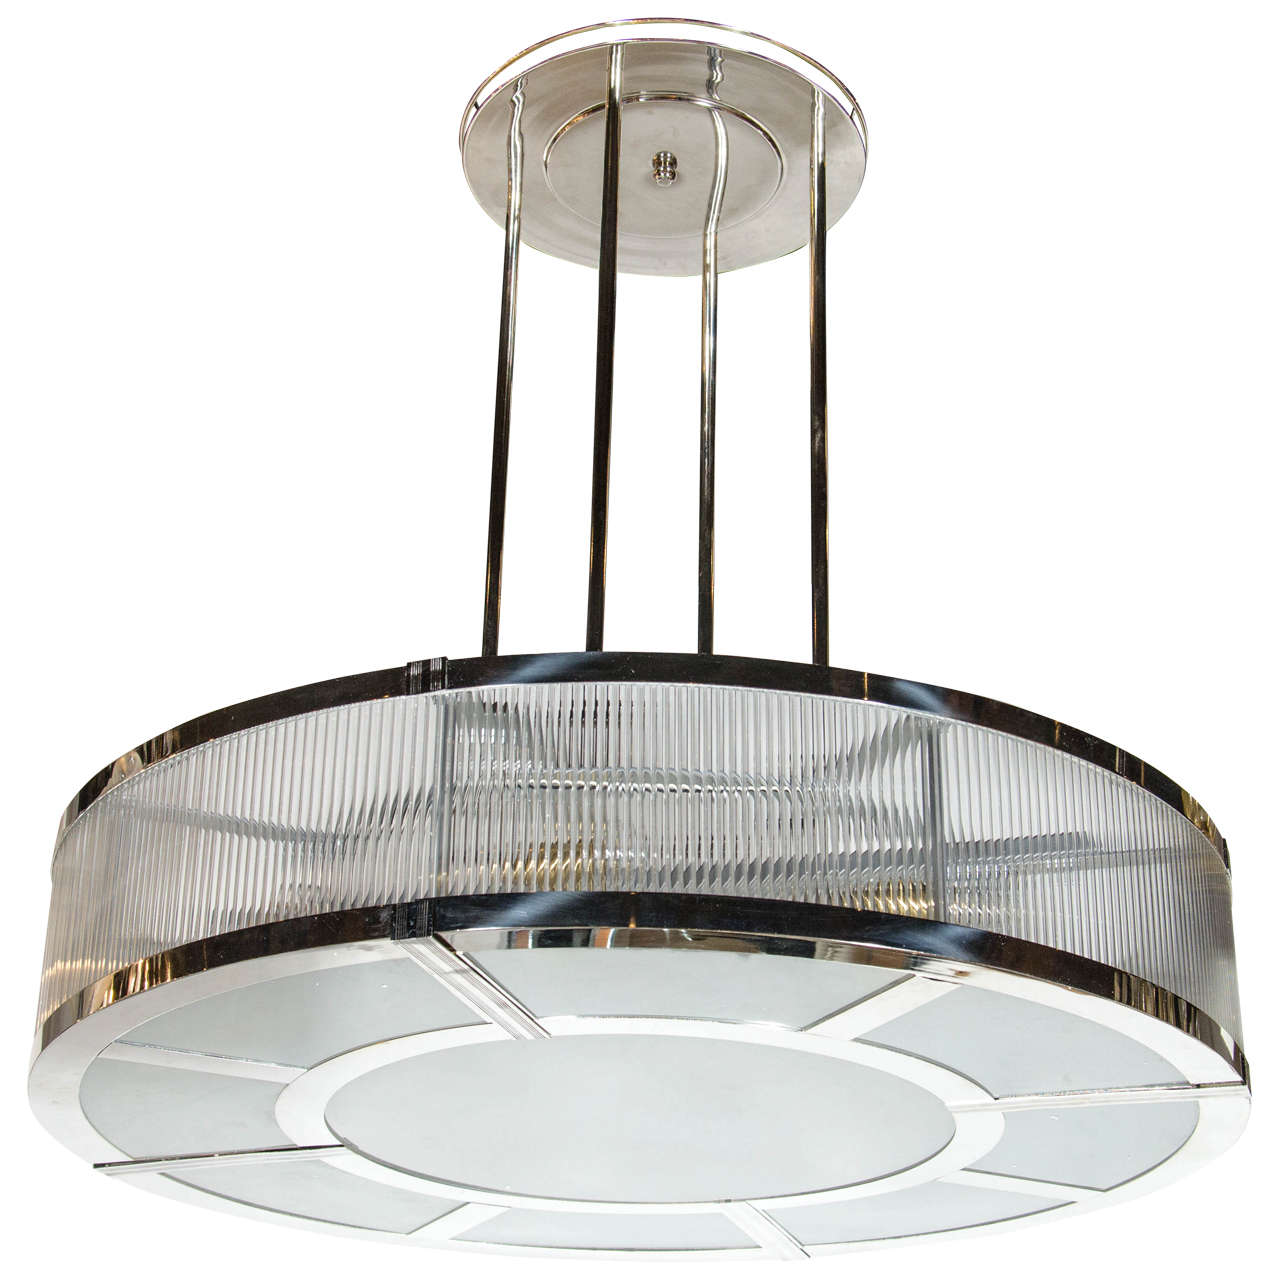 Streamline art deco style circular chandelier in polished nickel glass for sale